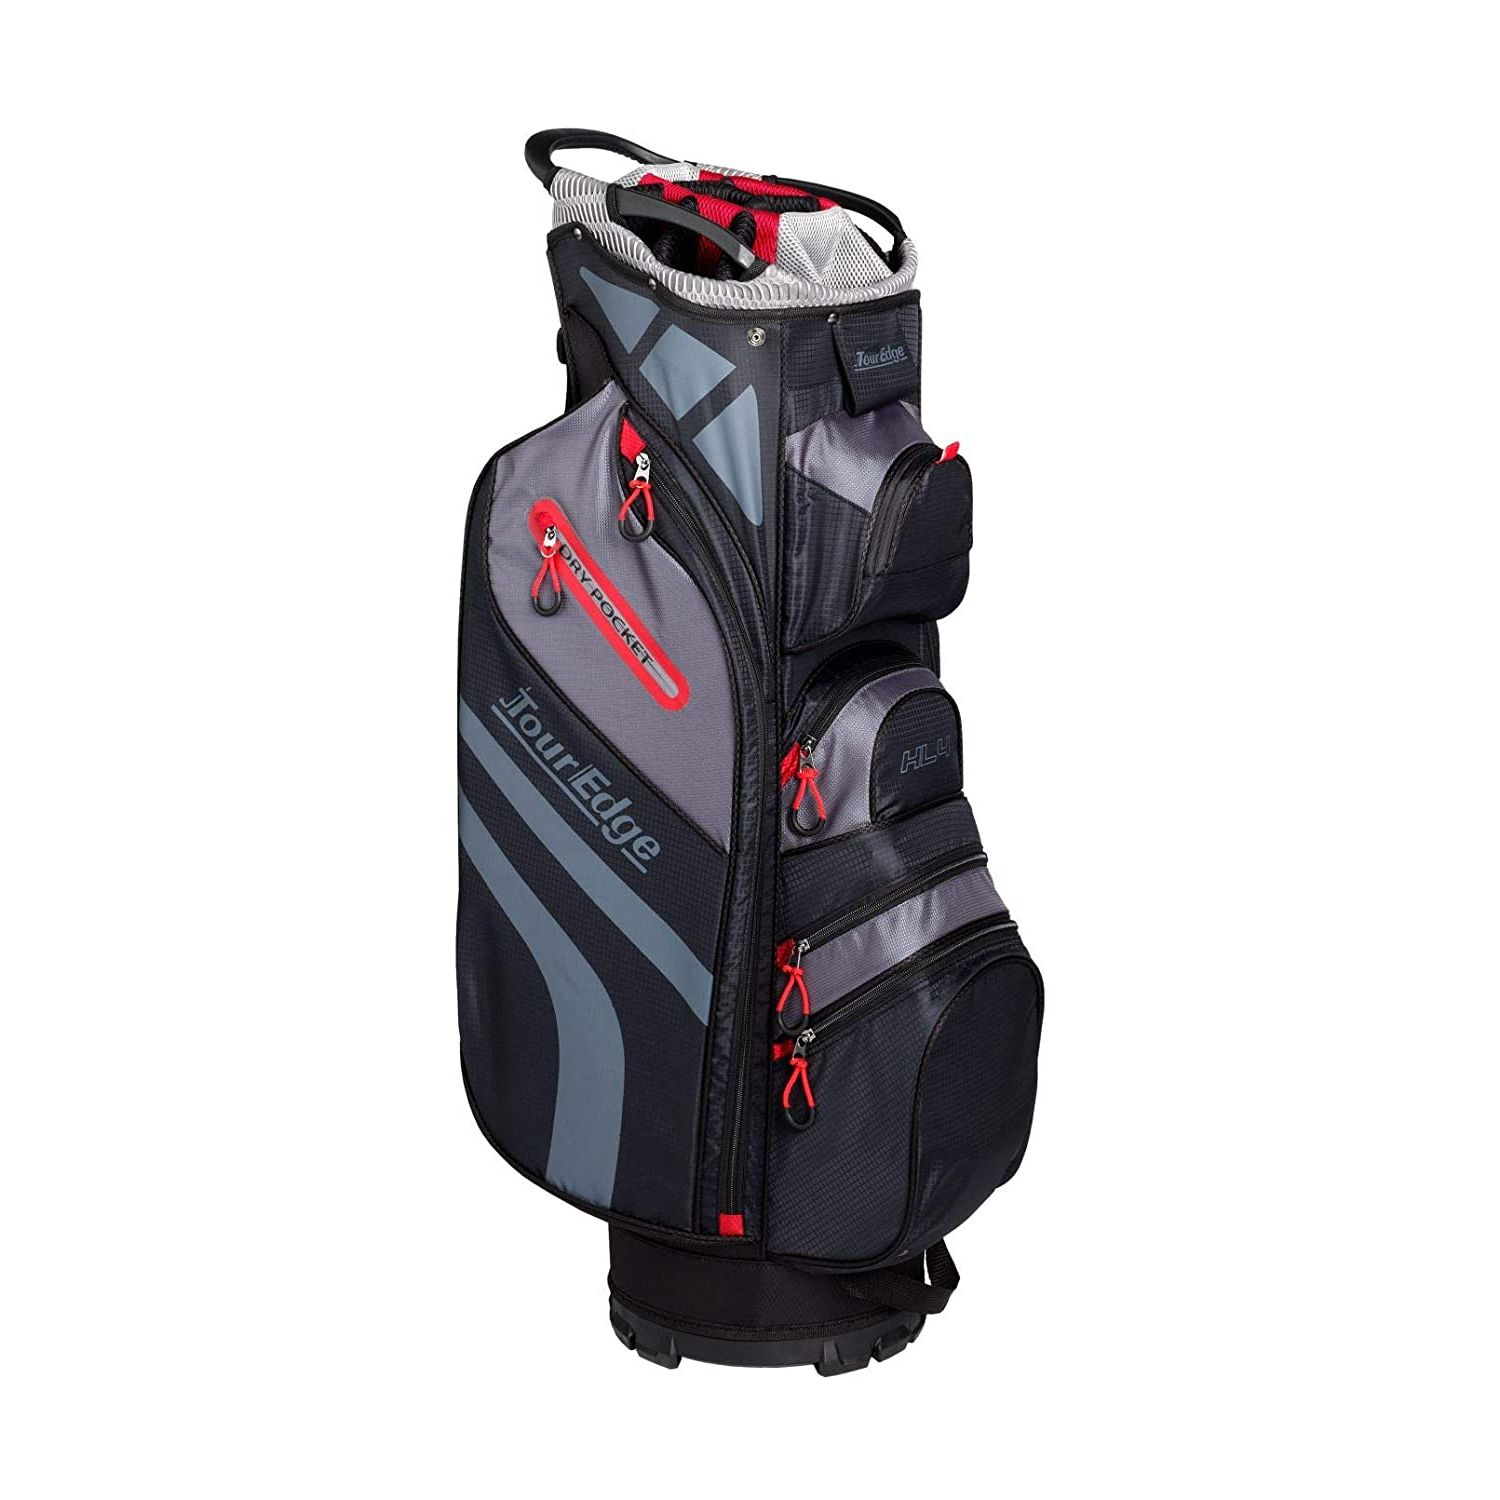 Tour Edge Hot Launch HL4 Golf Cart Bag-Black Red Silver